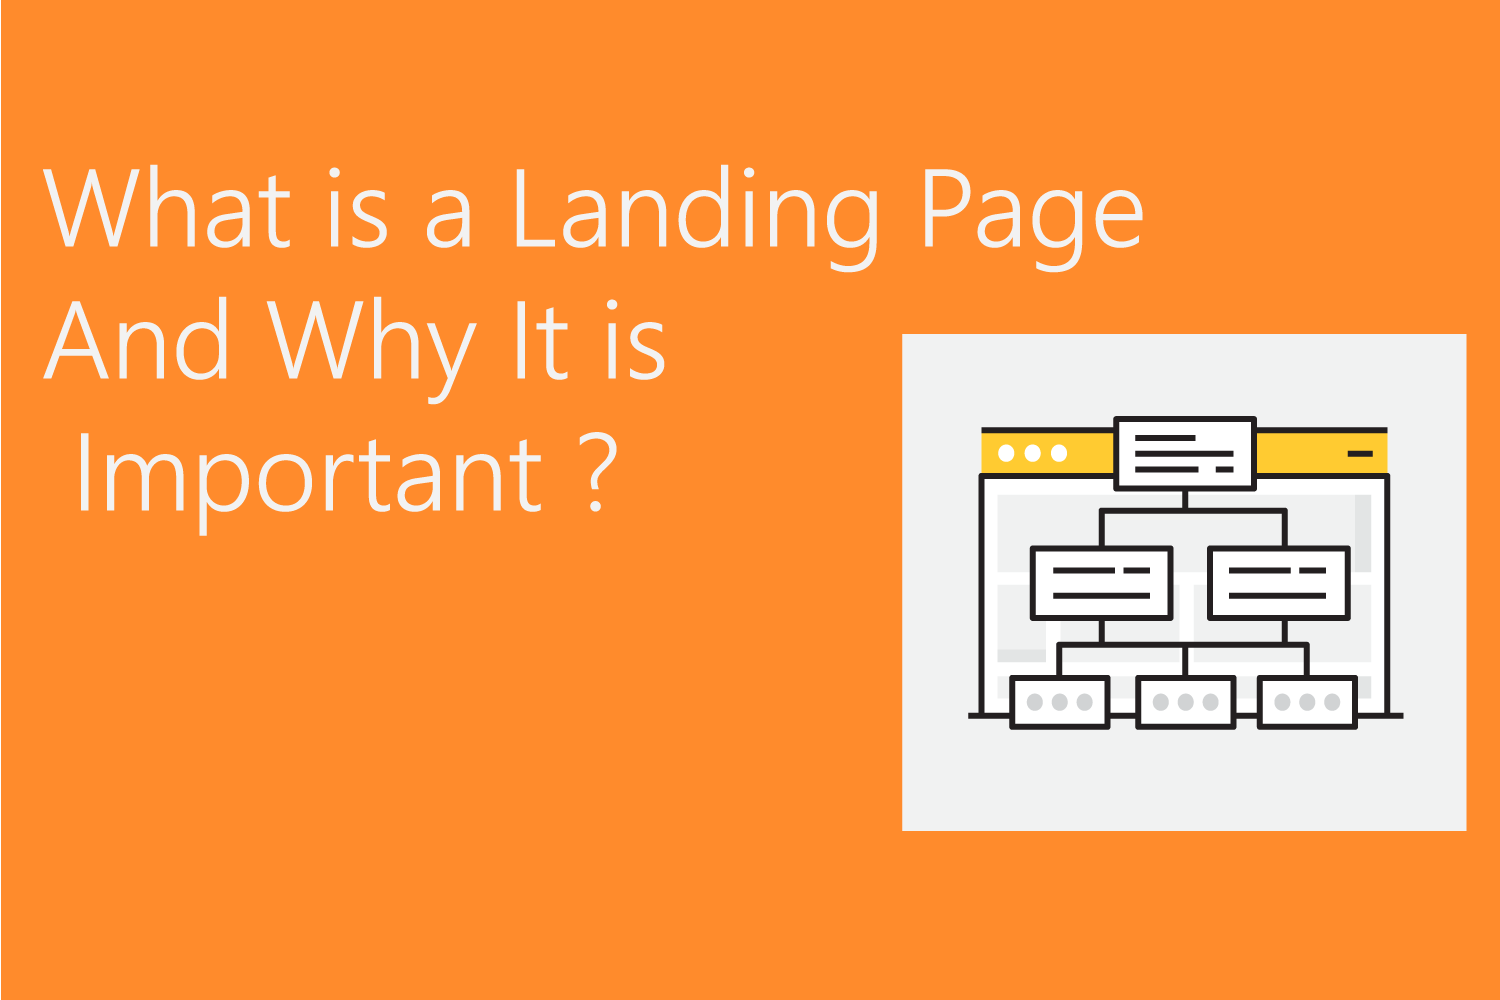 What Is a Landing Page And Why It is Important